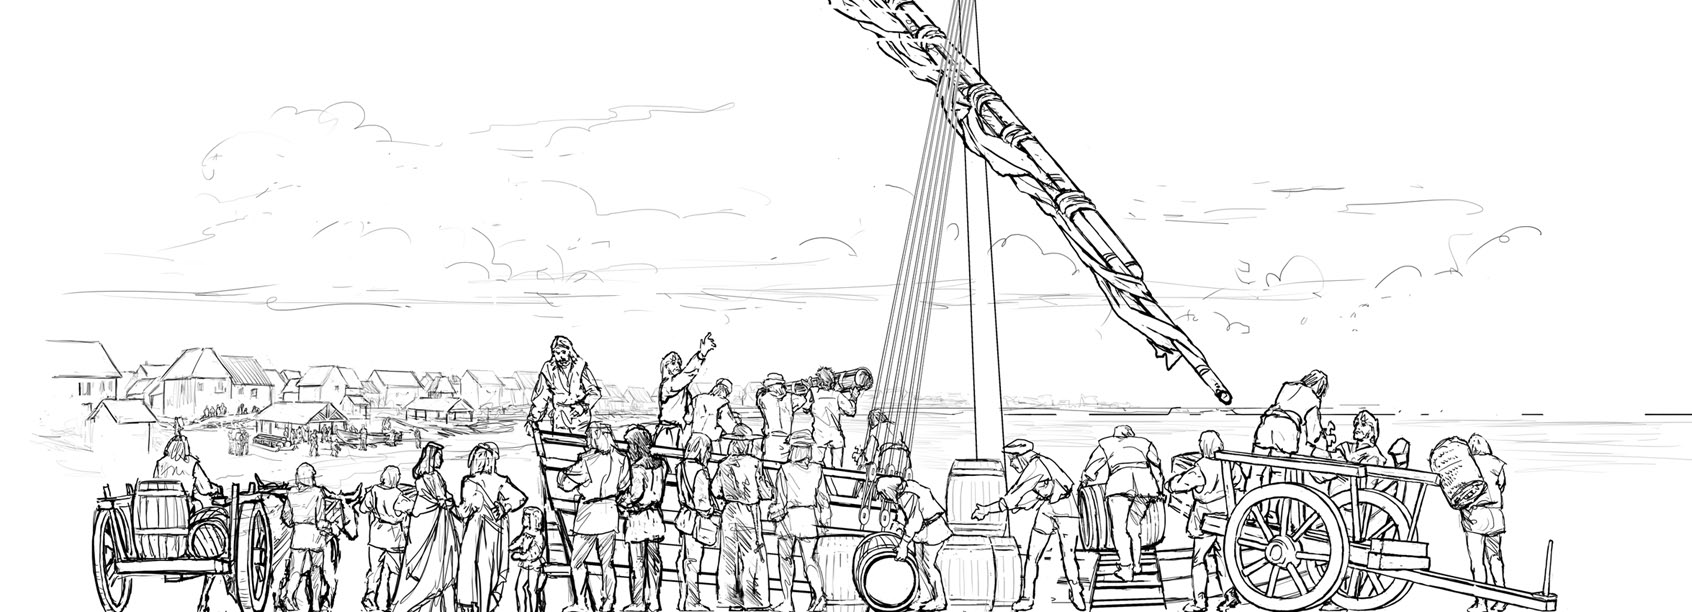 """Concept for """"Ship Mural 1"""" Digital Illustration •  Museum Of Florida History, Tallahassee, FL © KT"""